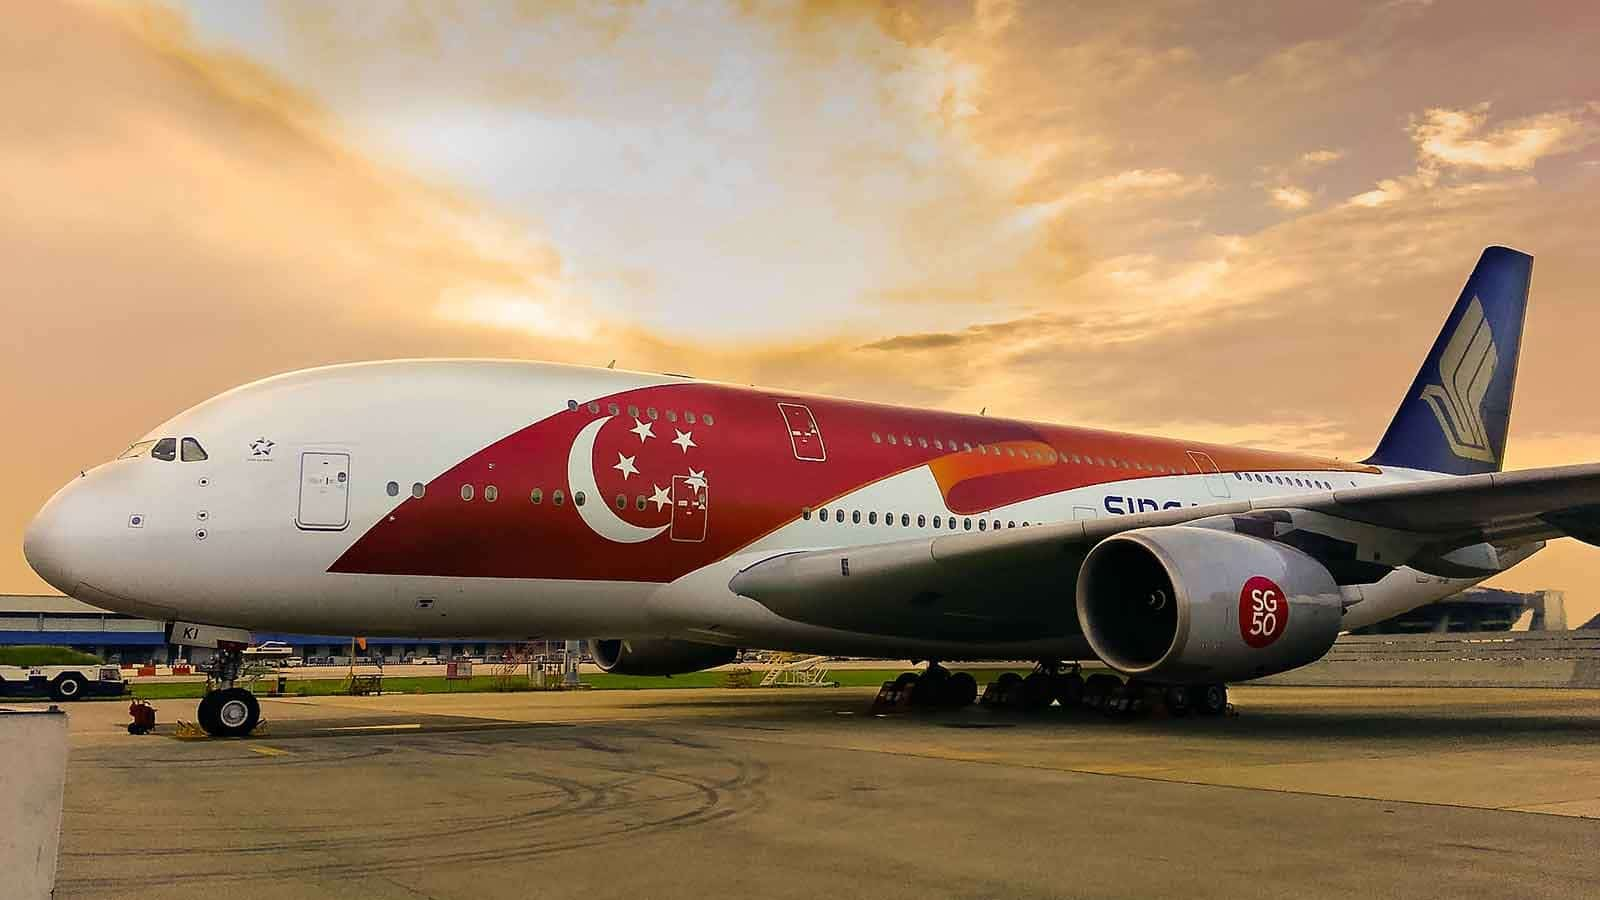 Singapore Airlines Golden Jubilee livery for A380 aircraft #avgeek #SQavgeek #SG50withSIA